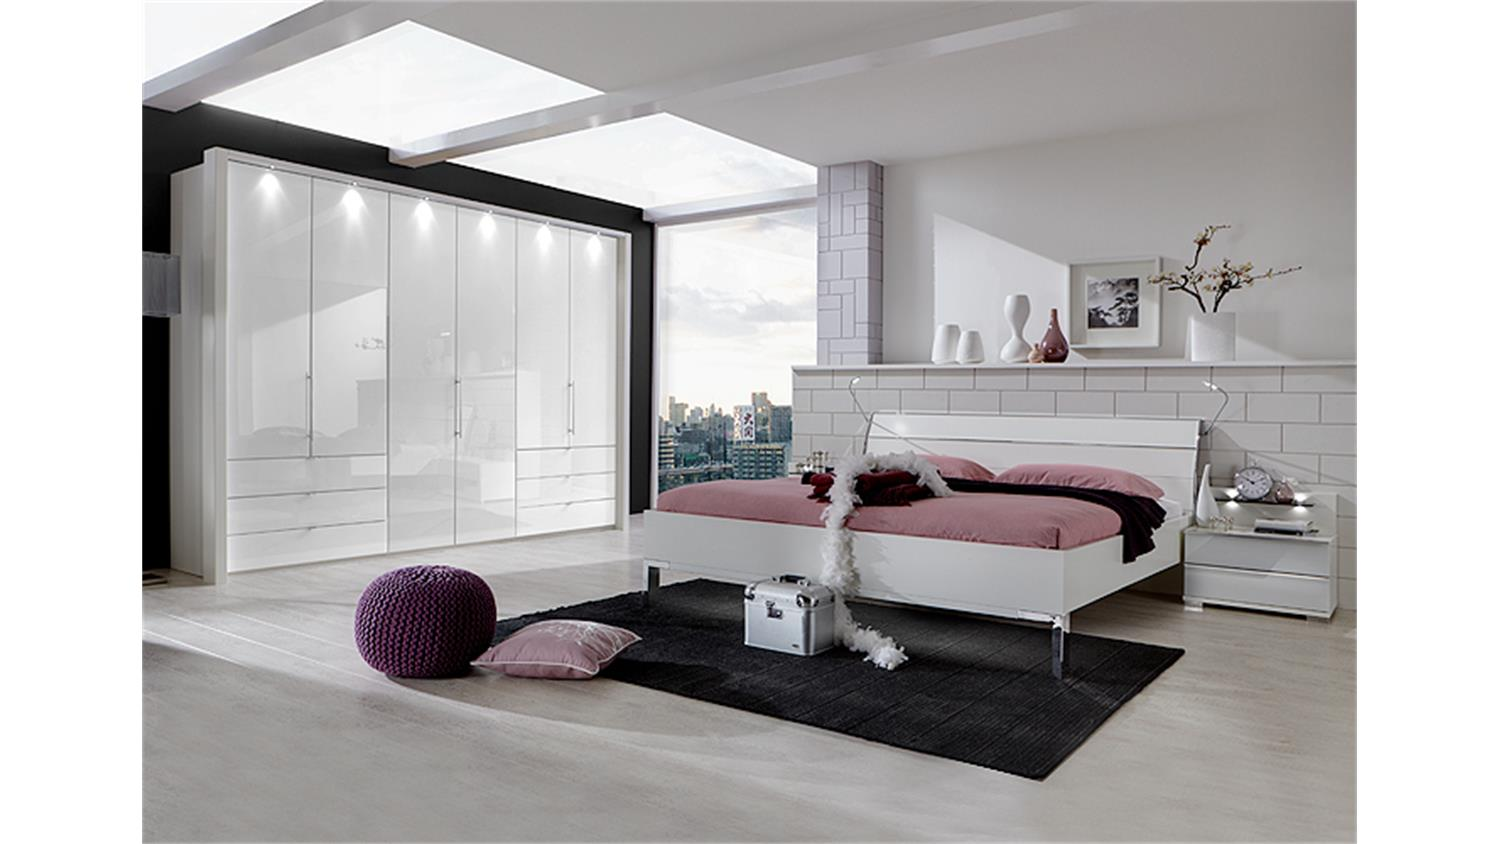 schlafzimmerset loft schrank bett nako wei und wei glas. Black Bedroom Furniture Sets. Home Design Ideas